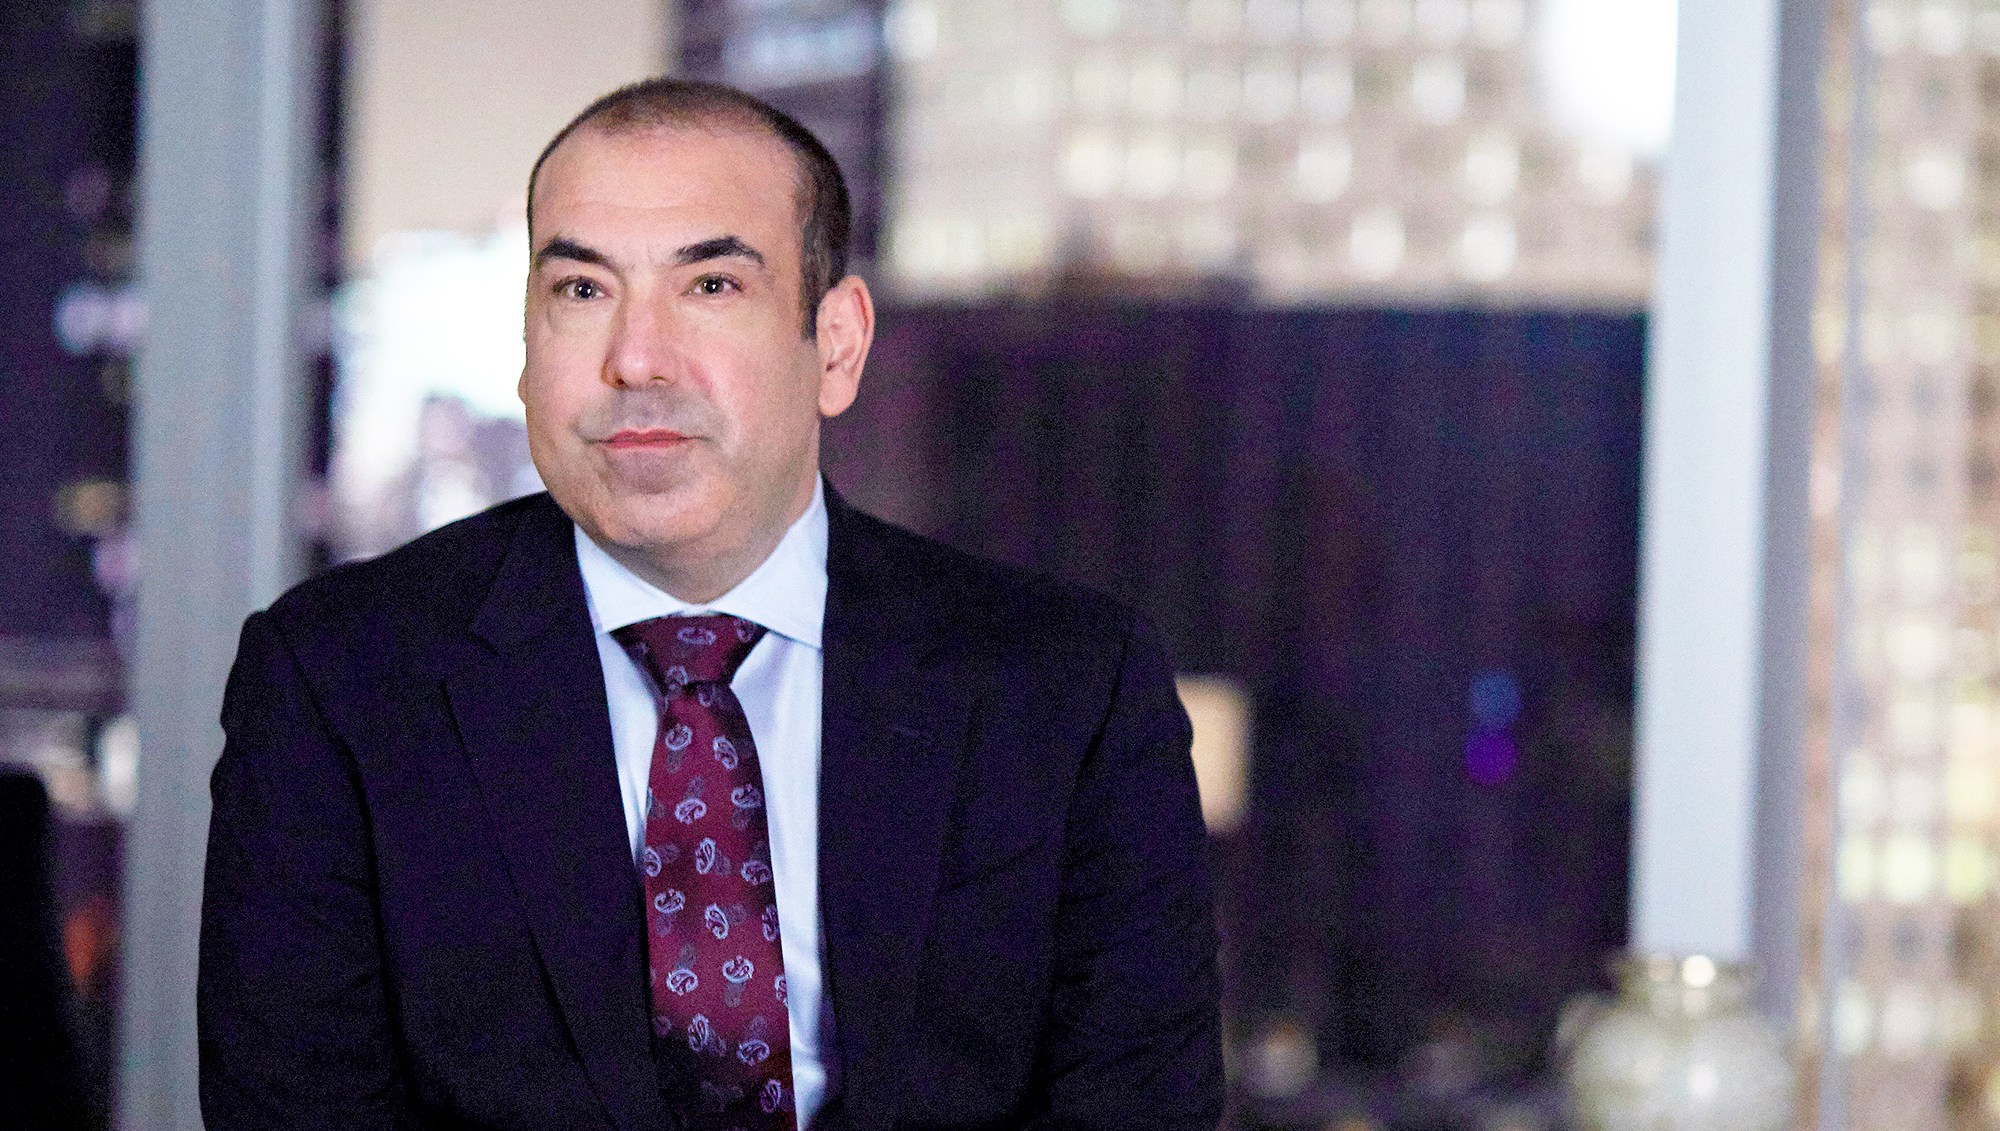 Rick Hoffman as Louis Litt in 'Suits'